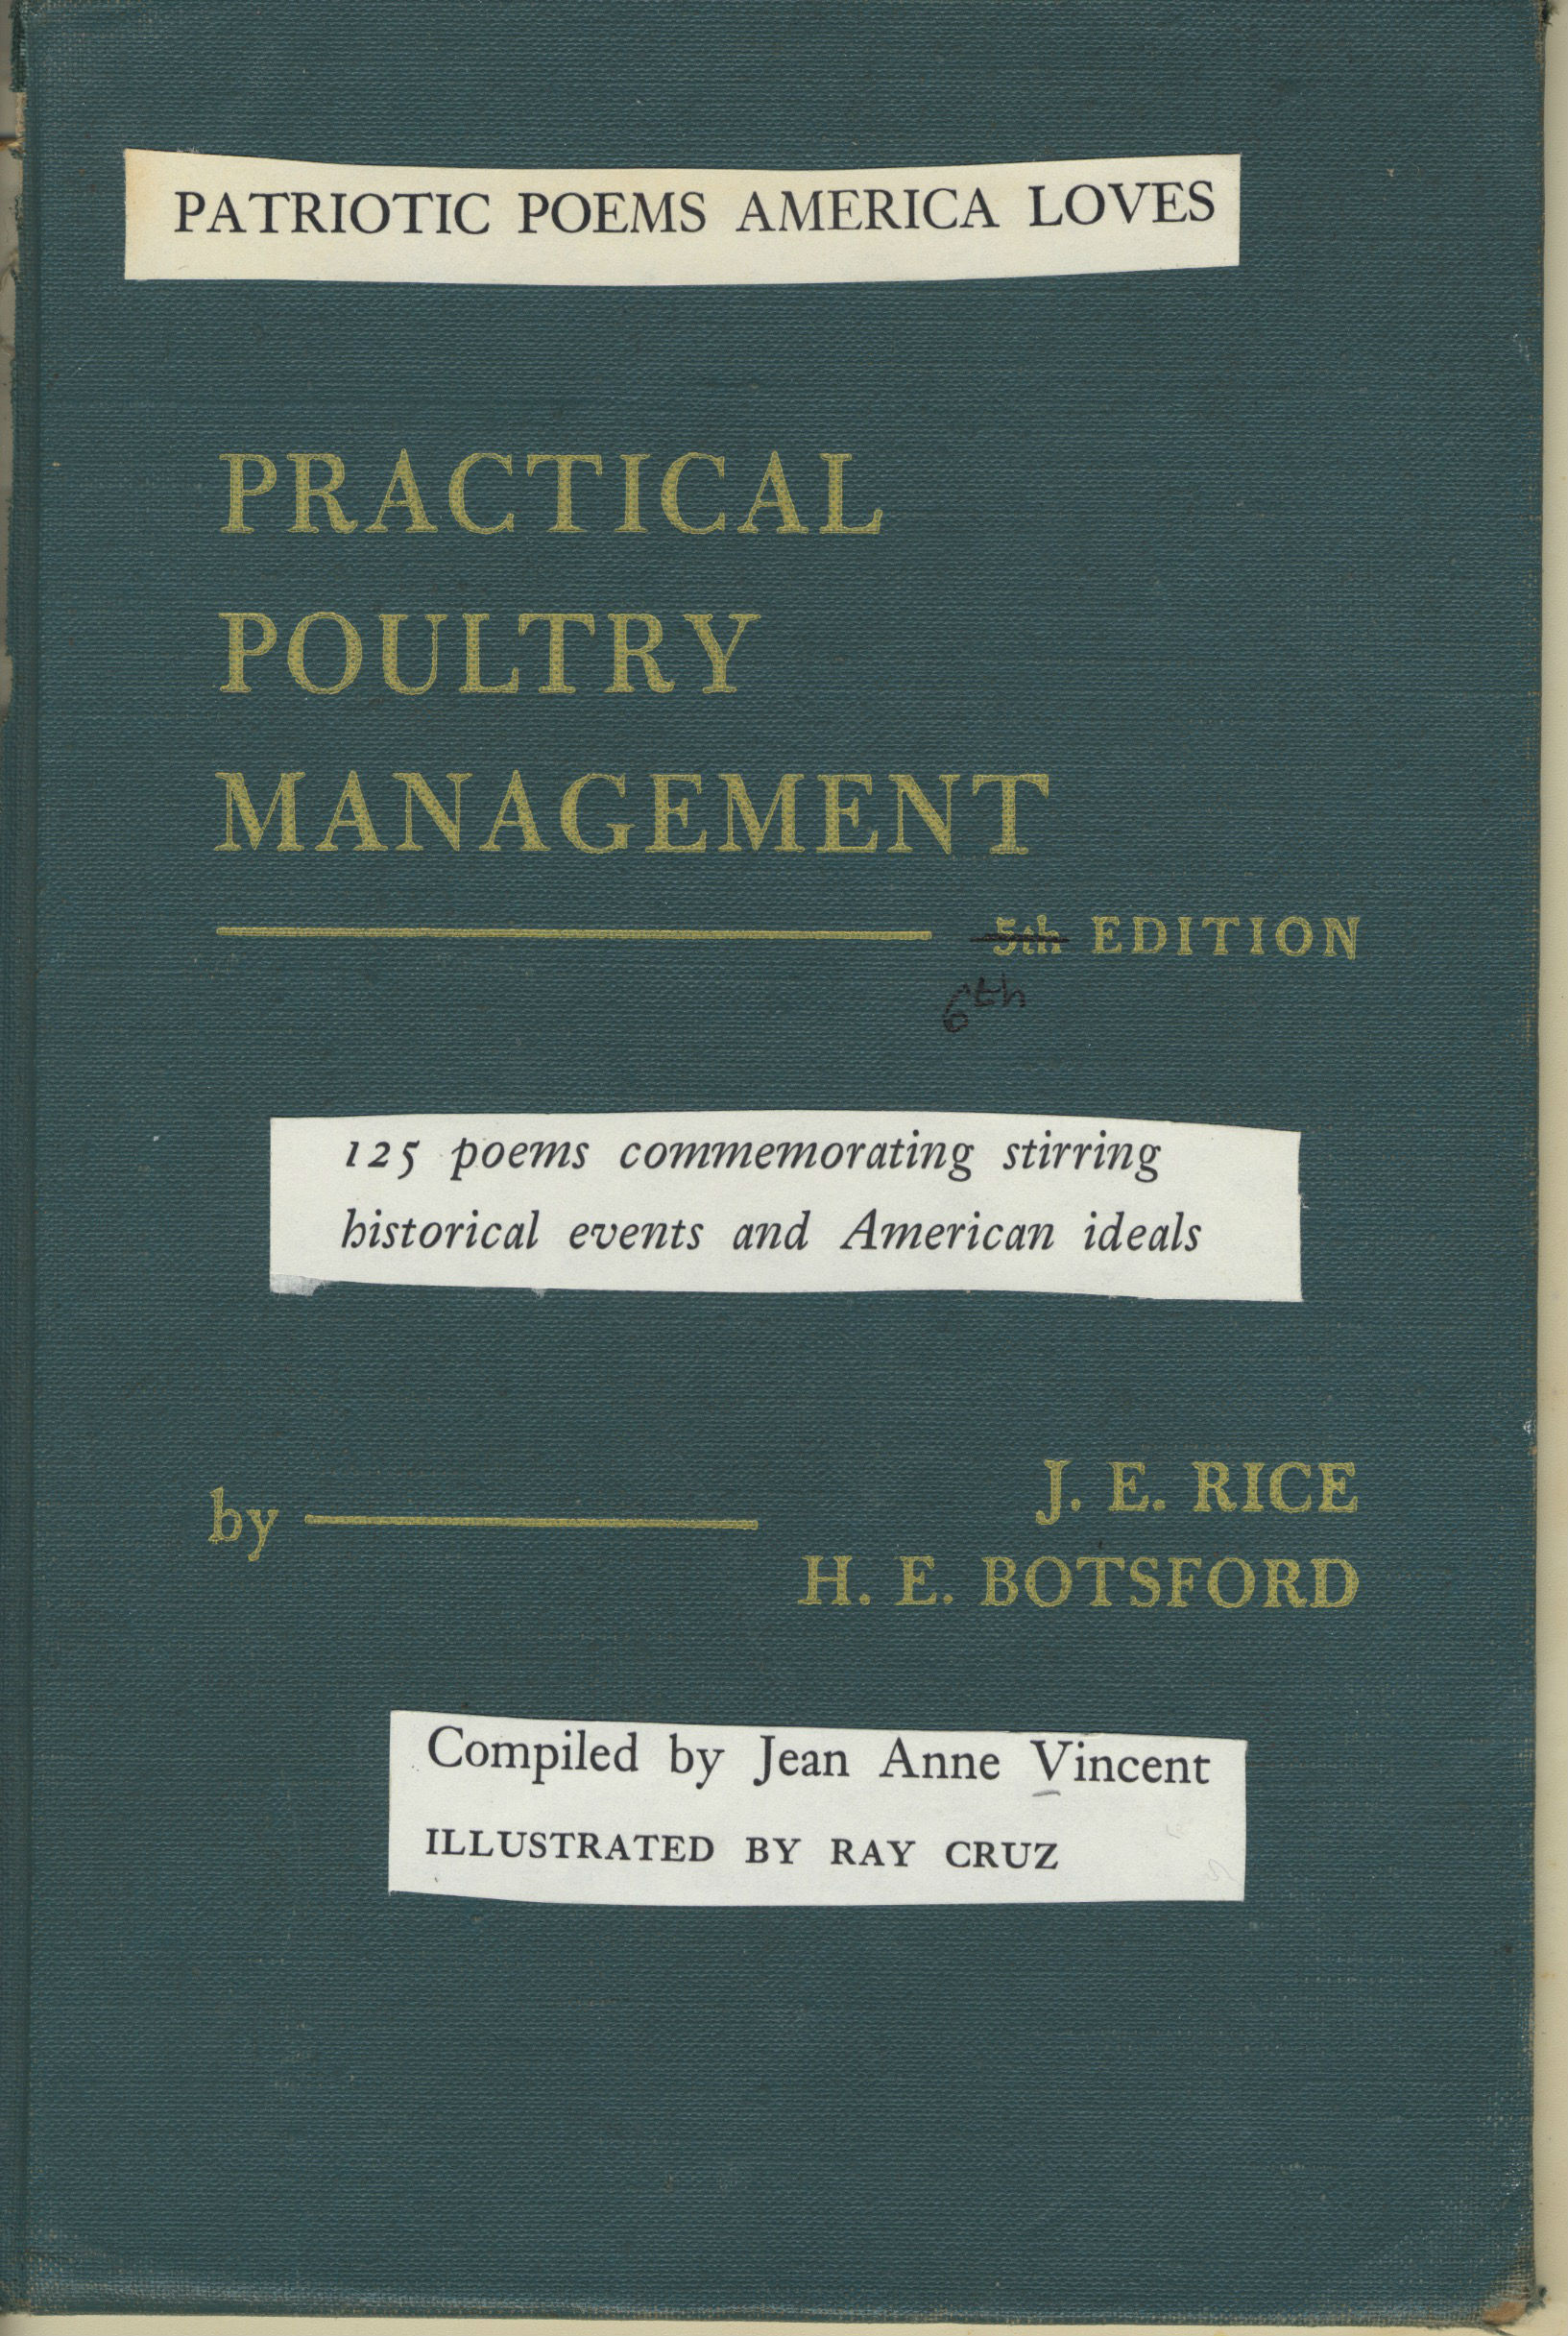 Patriotic Poems America Loves and Practical Poultry Management